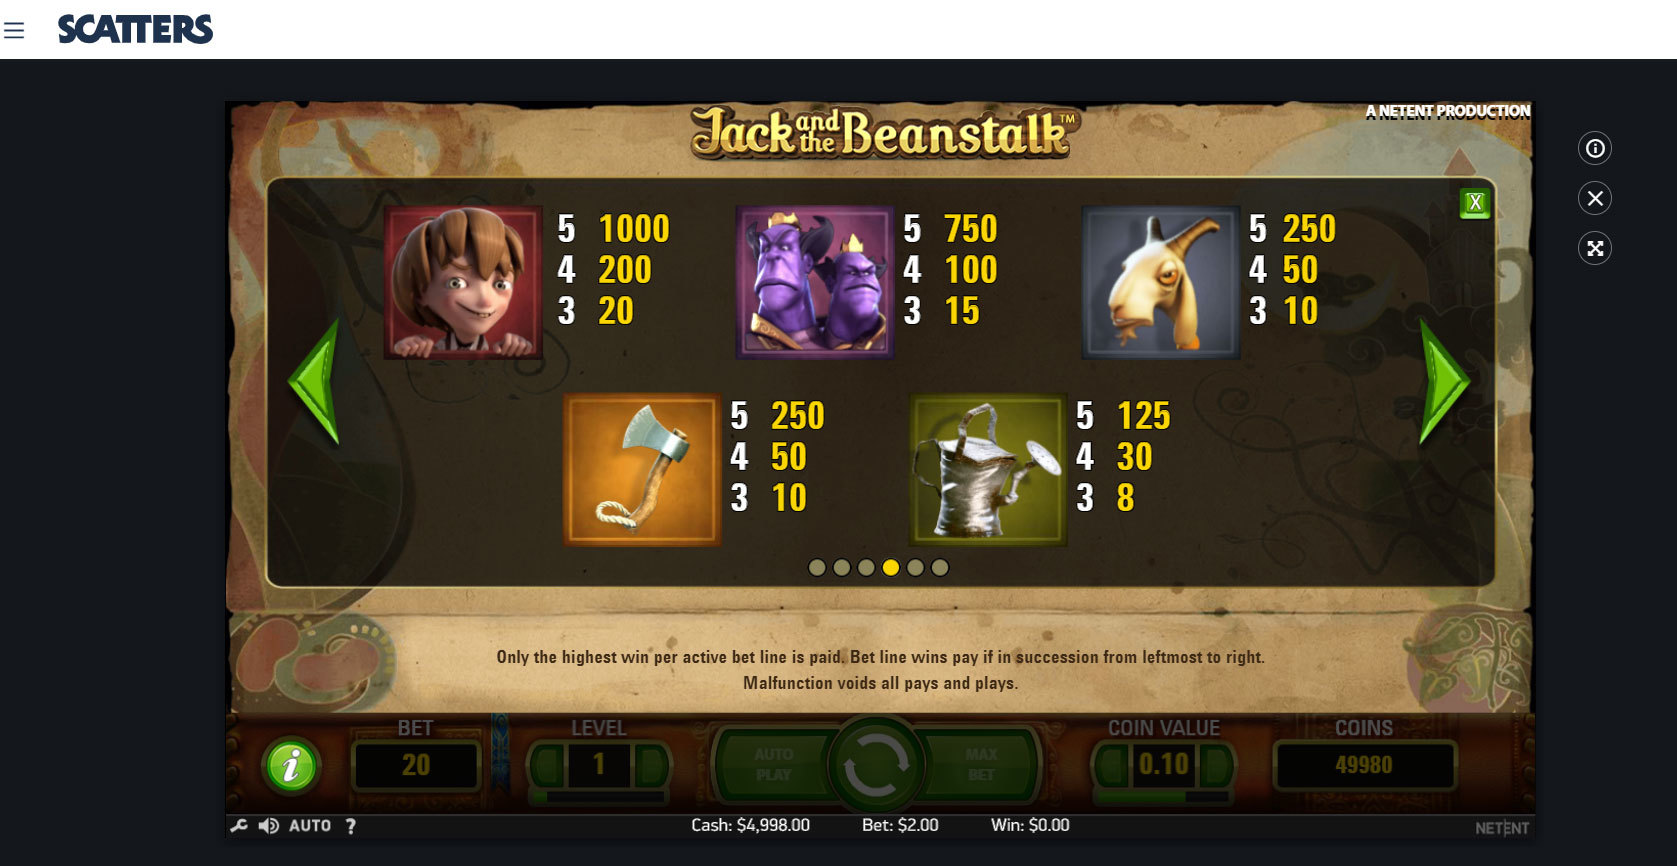 Play Jack and the Beanstalk by netent for Free or Real Money at Scatters Casino